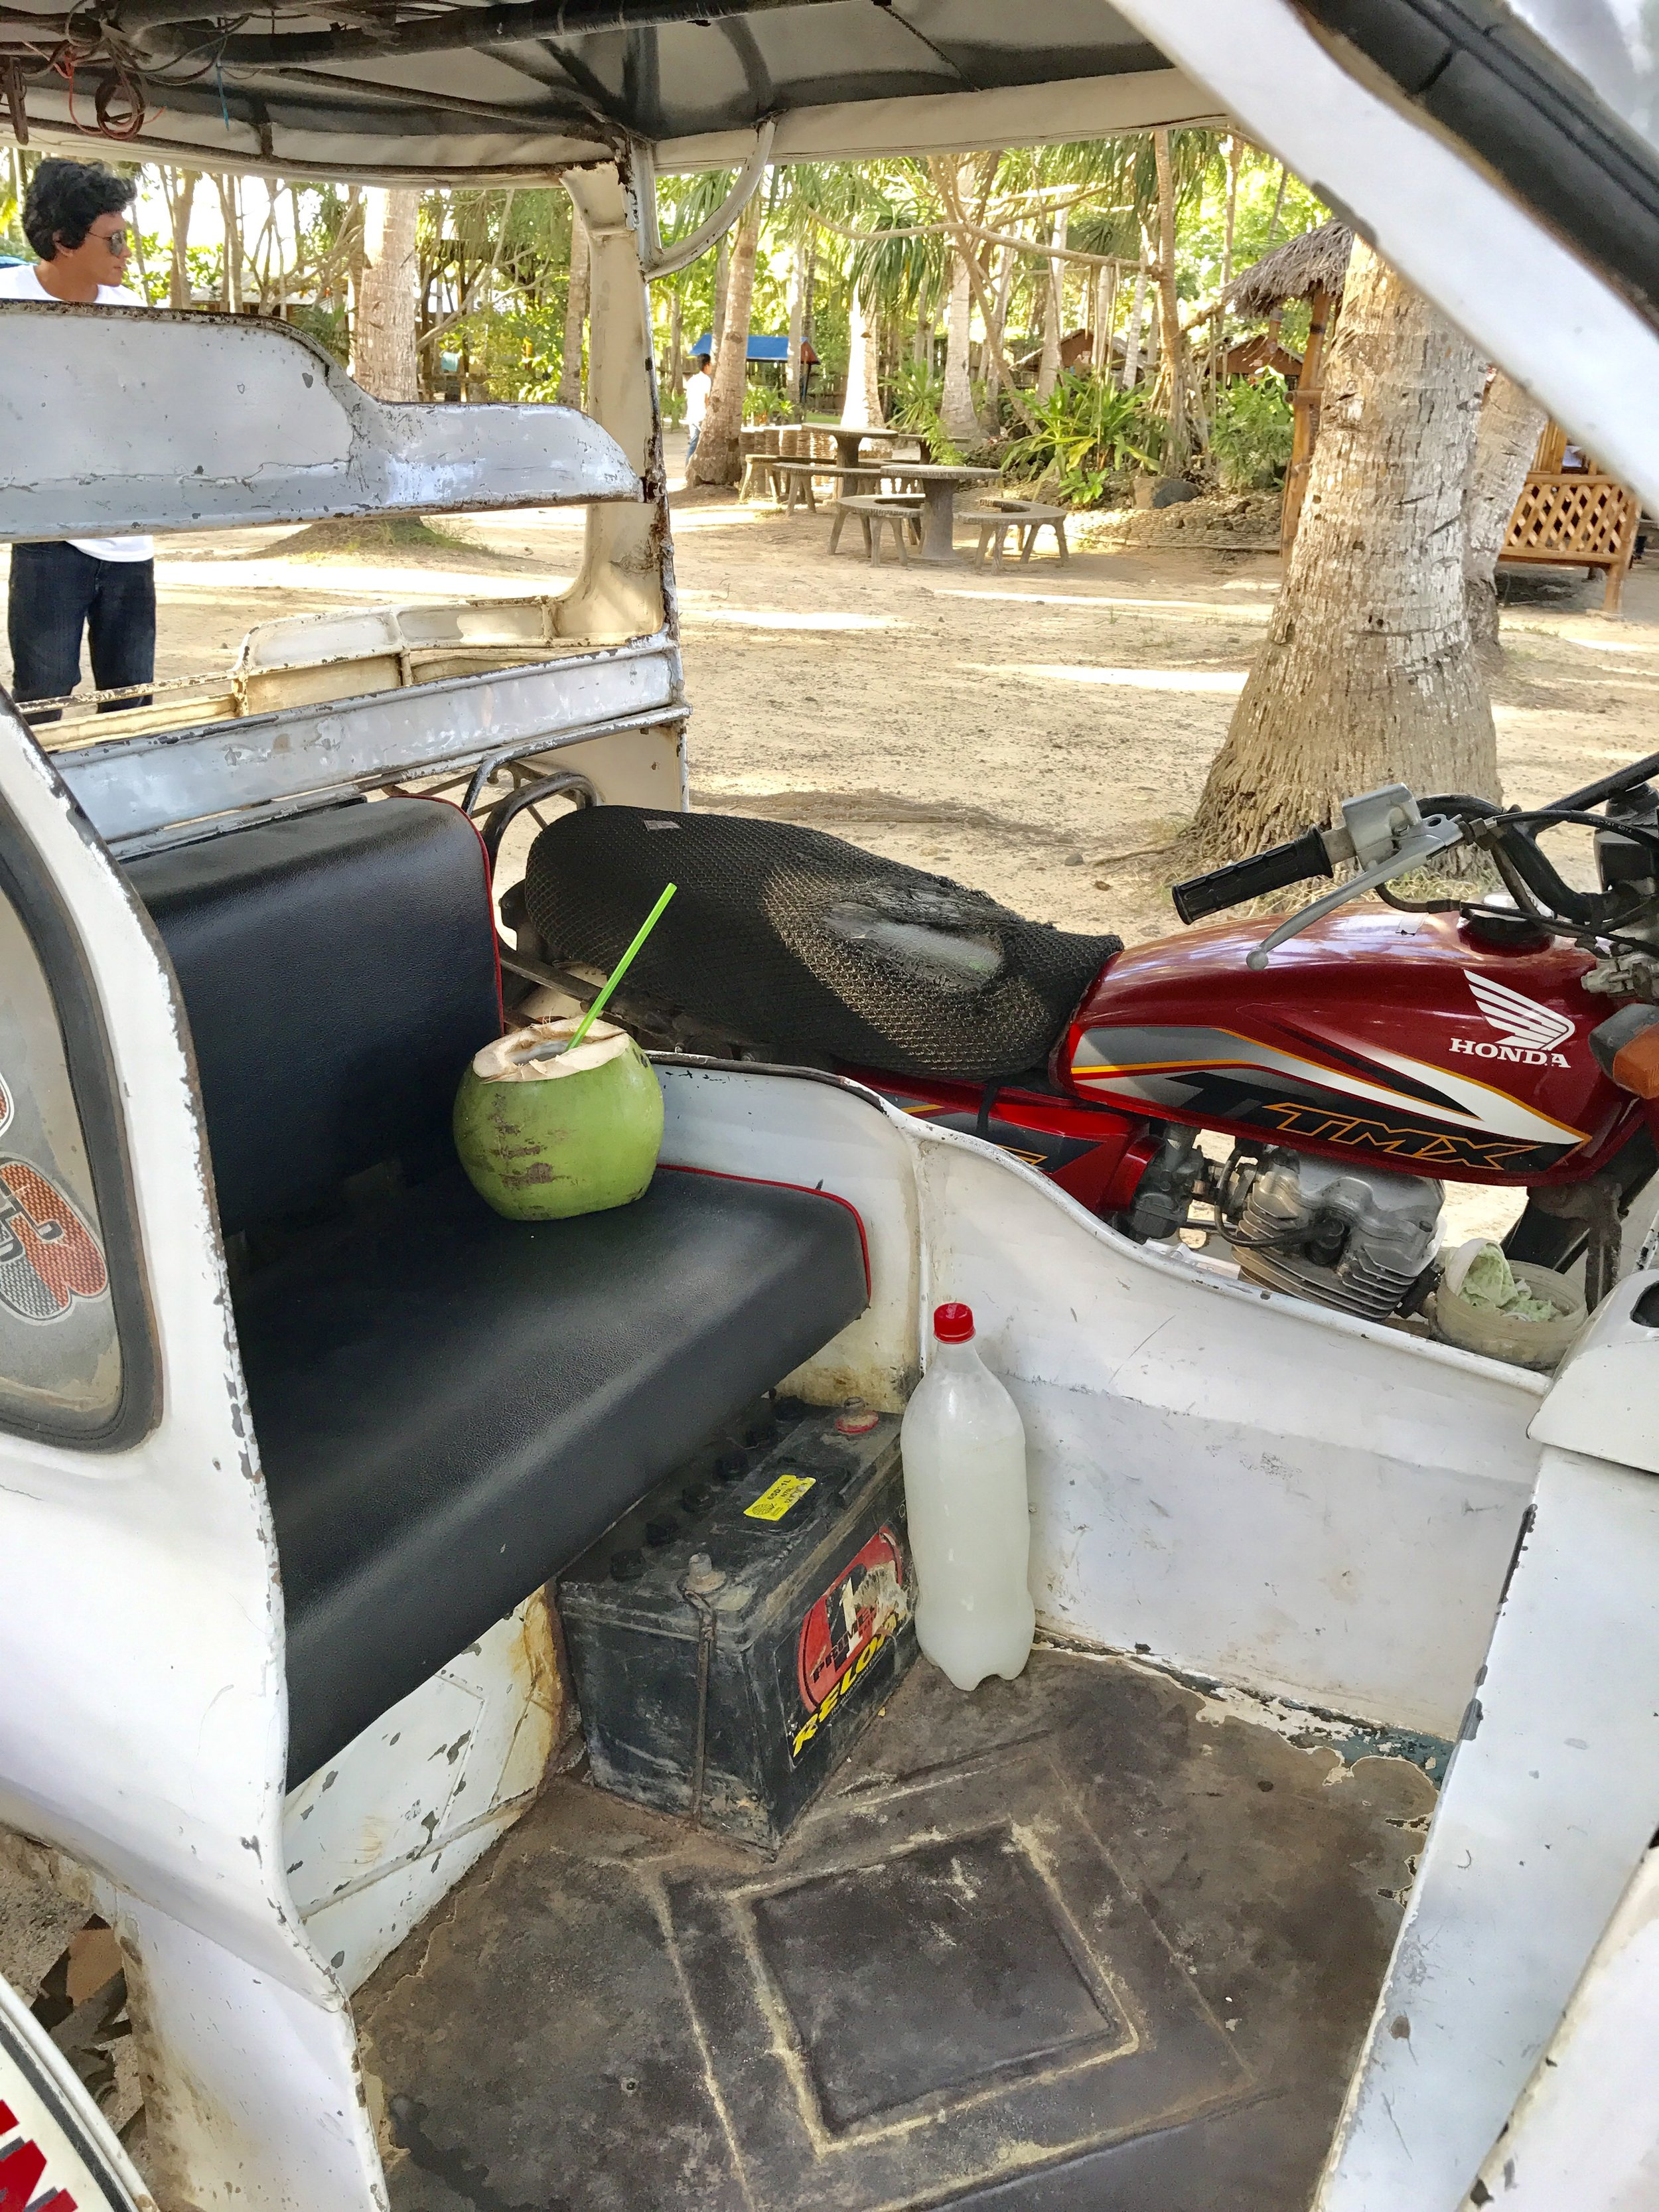 Coconut juice and a bottle of tuba in my tricycle